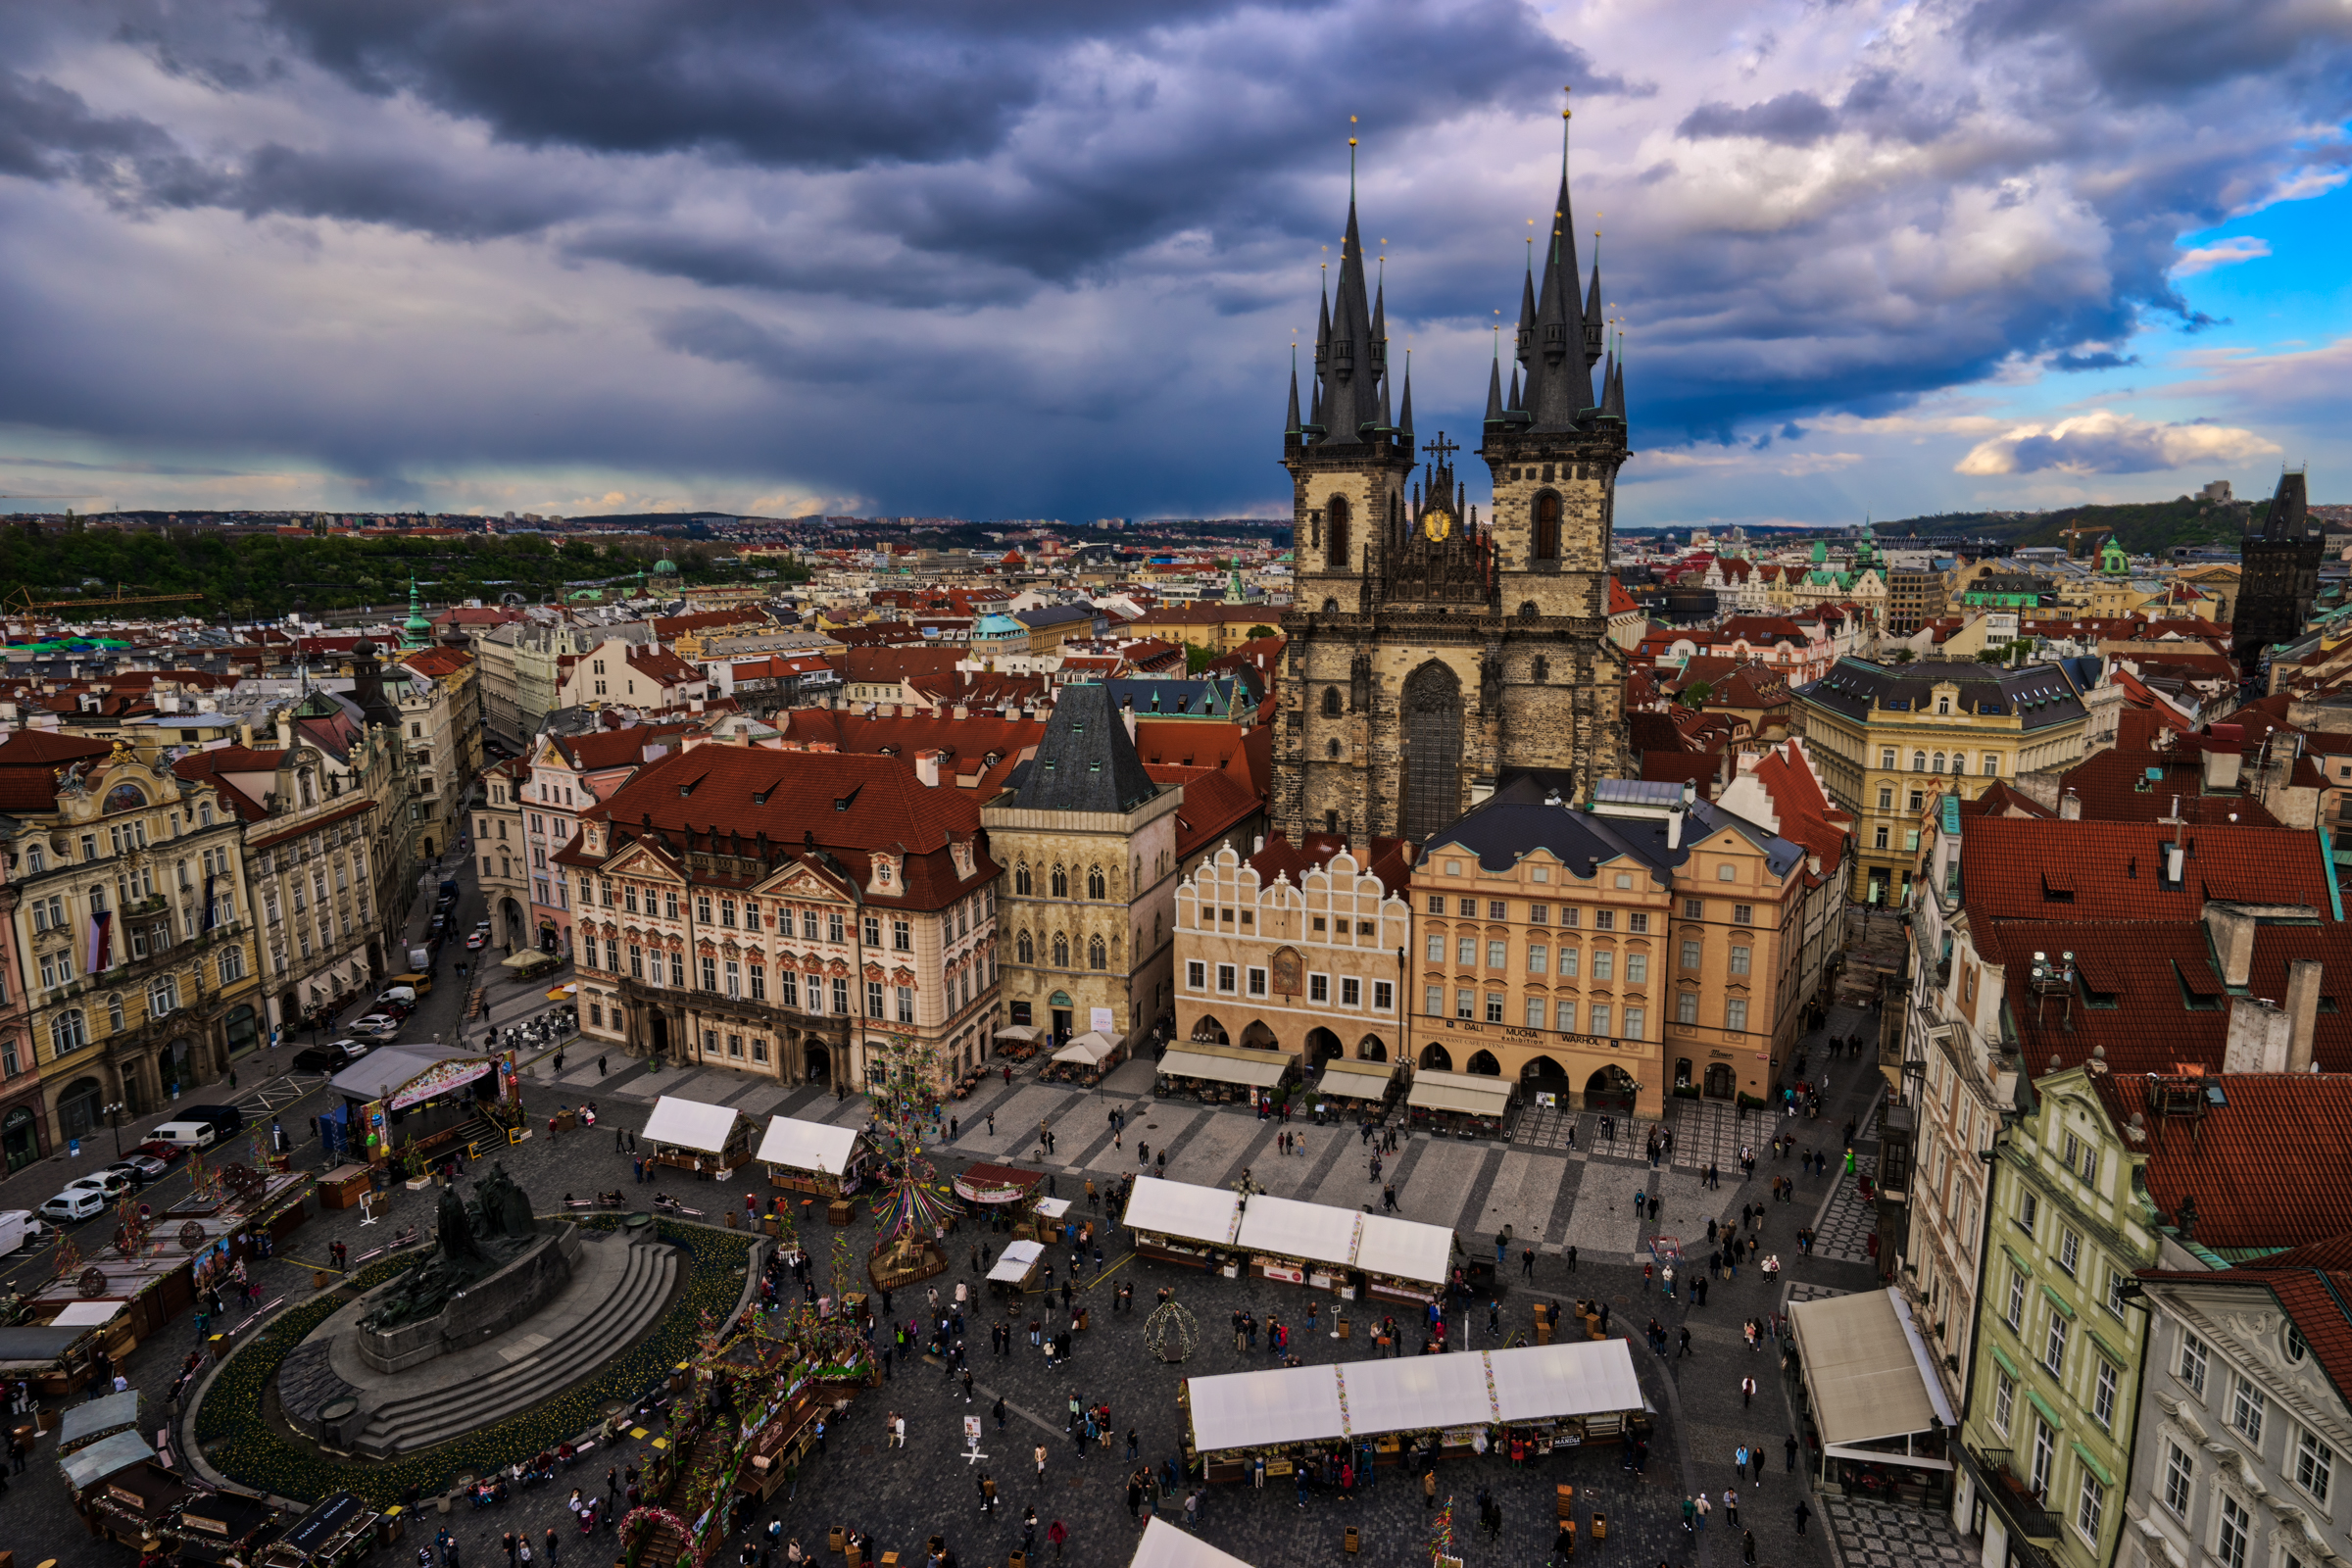 Prague-Old-Town-Square-HDR-tower-view-1a.jpg